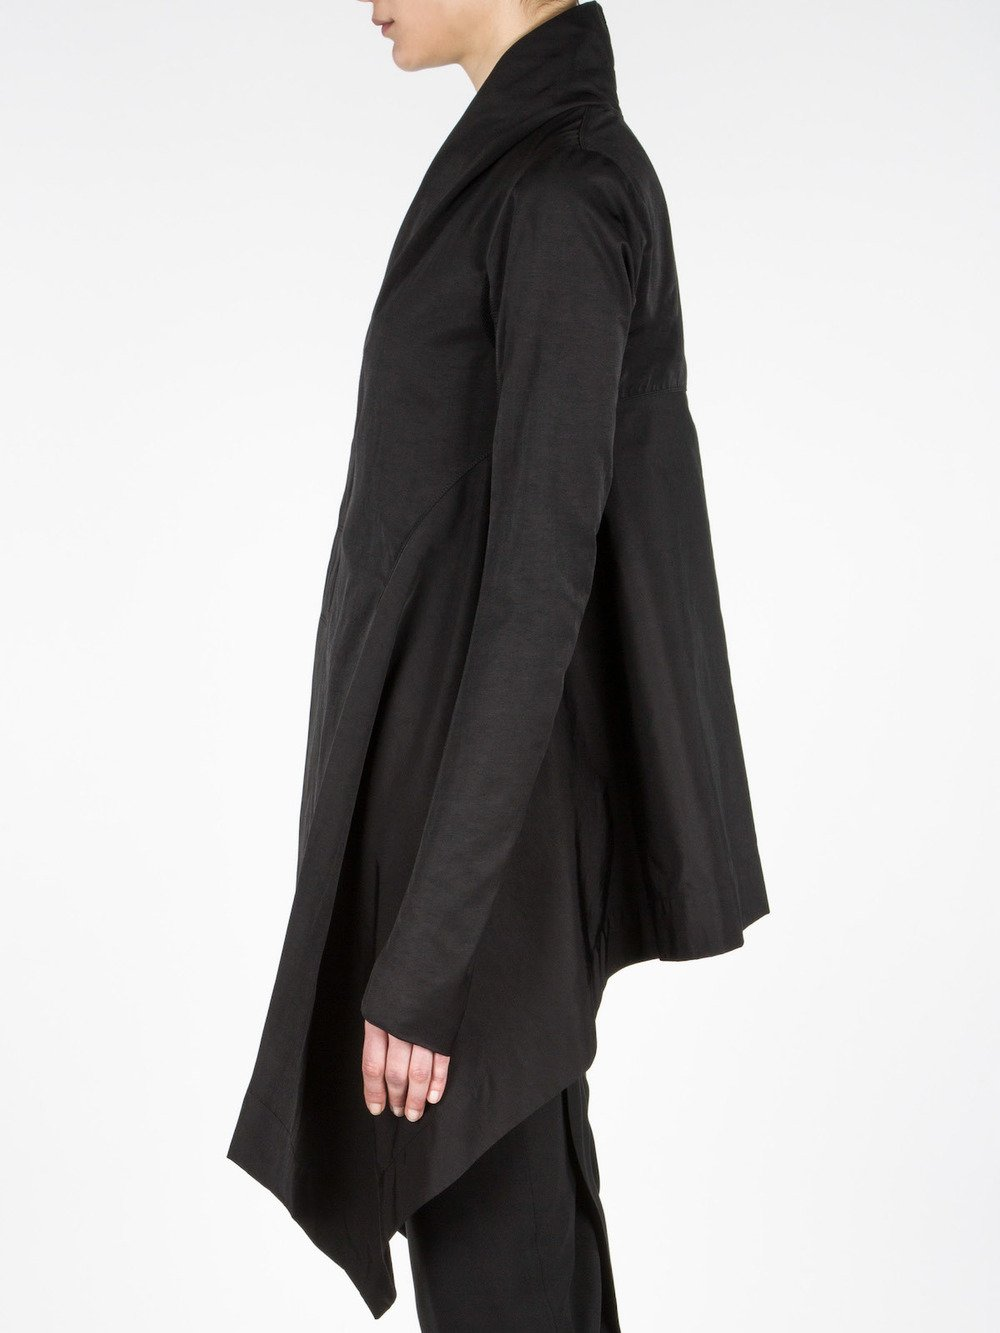 RICK OWENS - OBLIQUE COAT